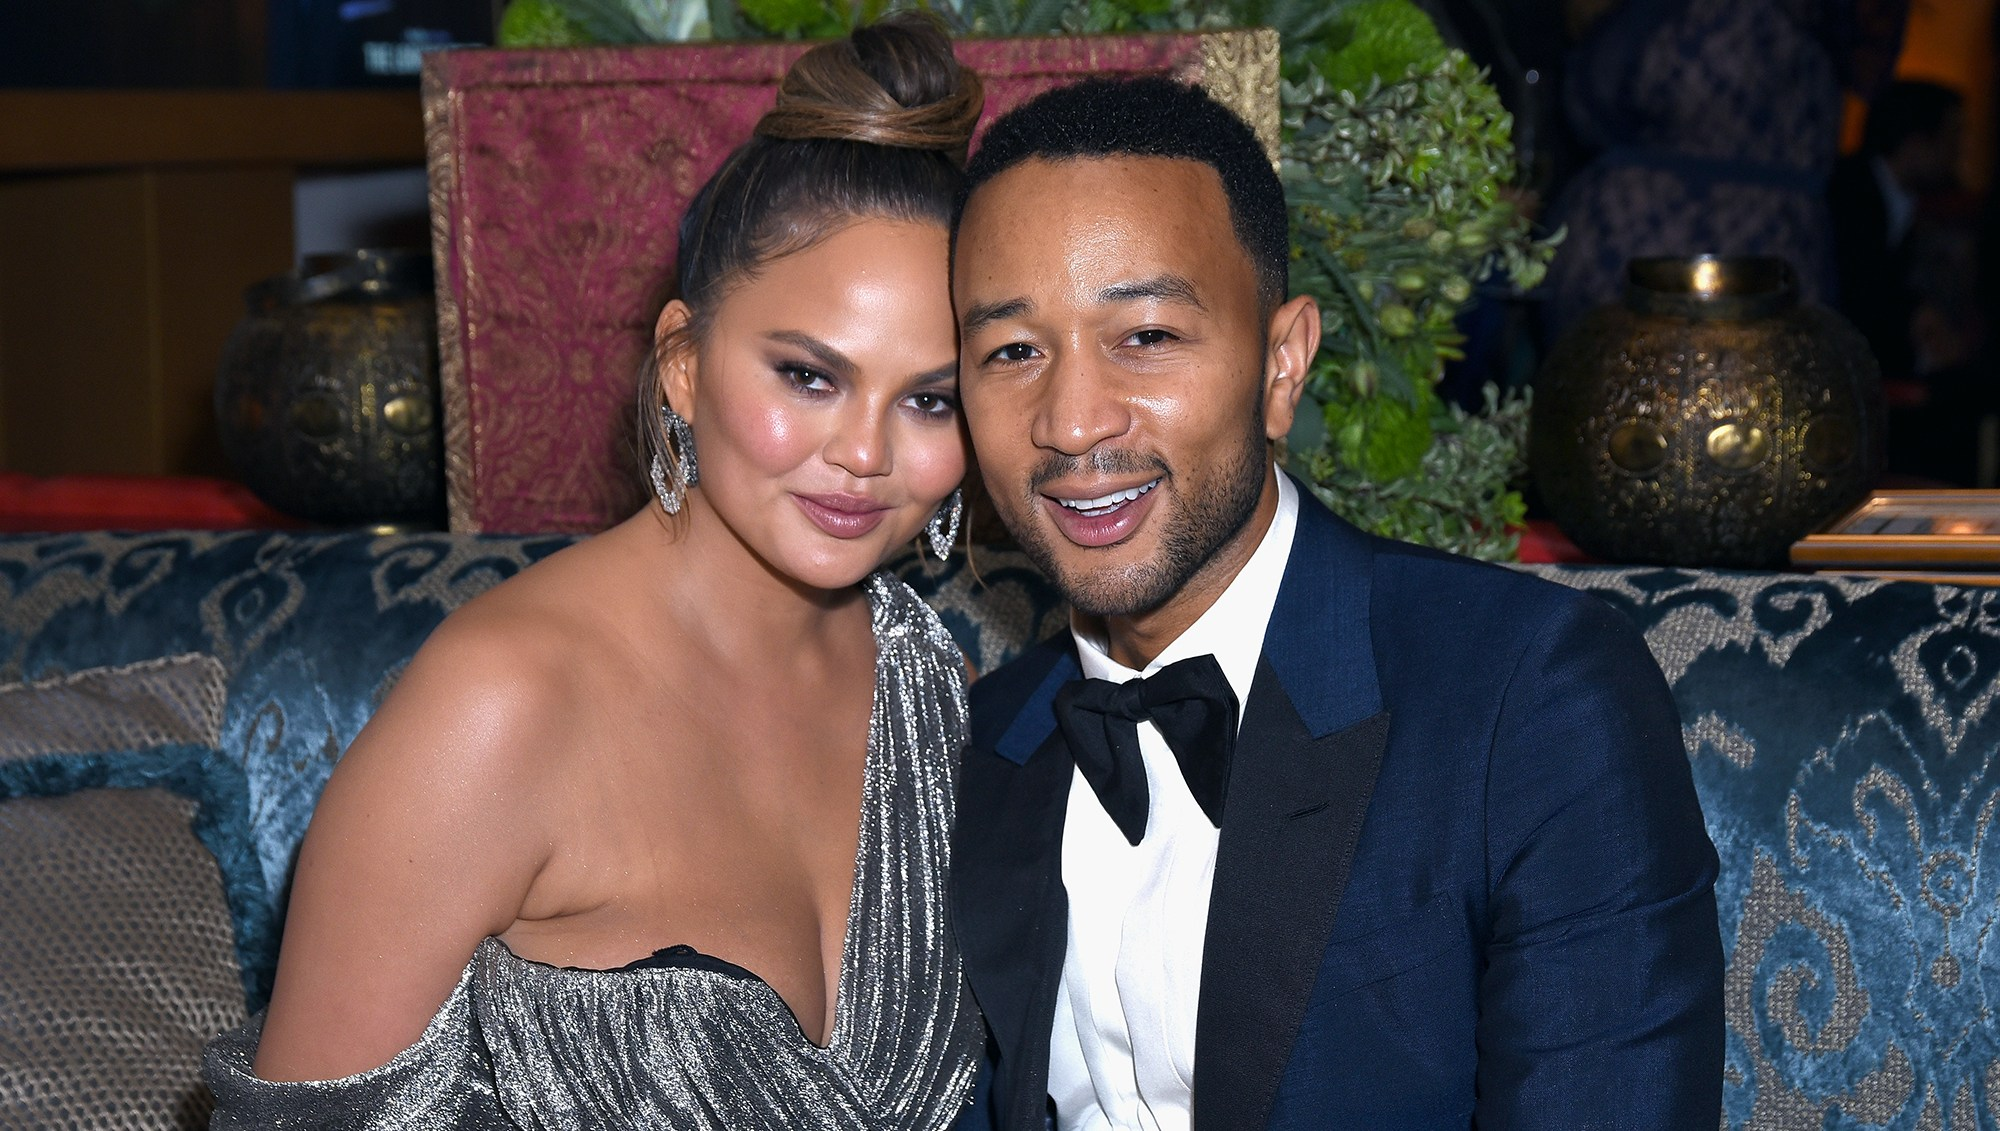 Chrissy Teigen Reveals John Legend Cooked For Her 'Seven Days a Week' While She Was Pregnant